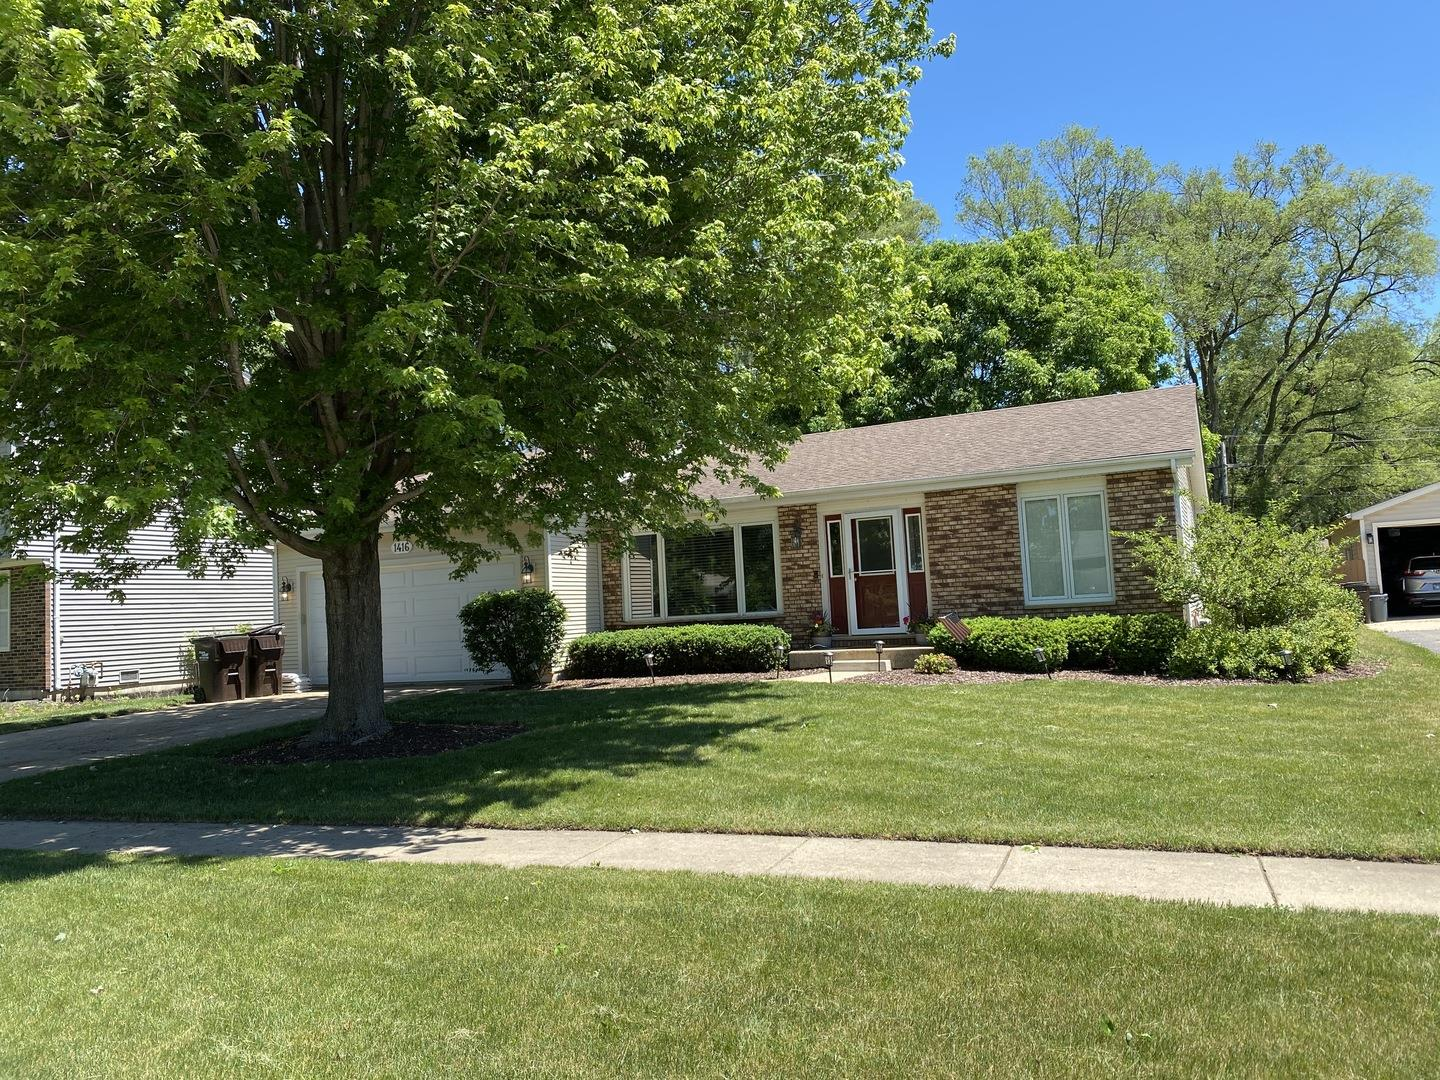 1416 N Scully Drive, McHenry, IL 60050 - #: 11105452